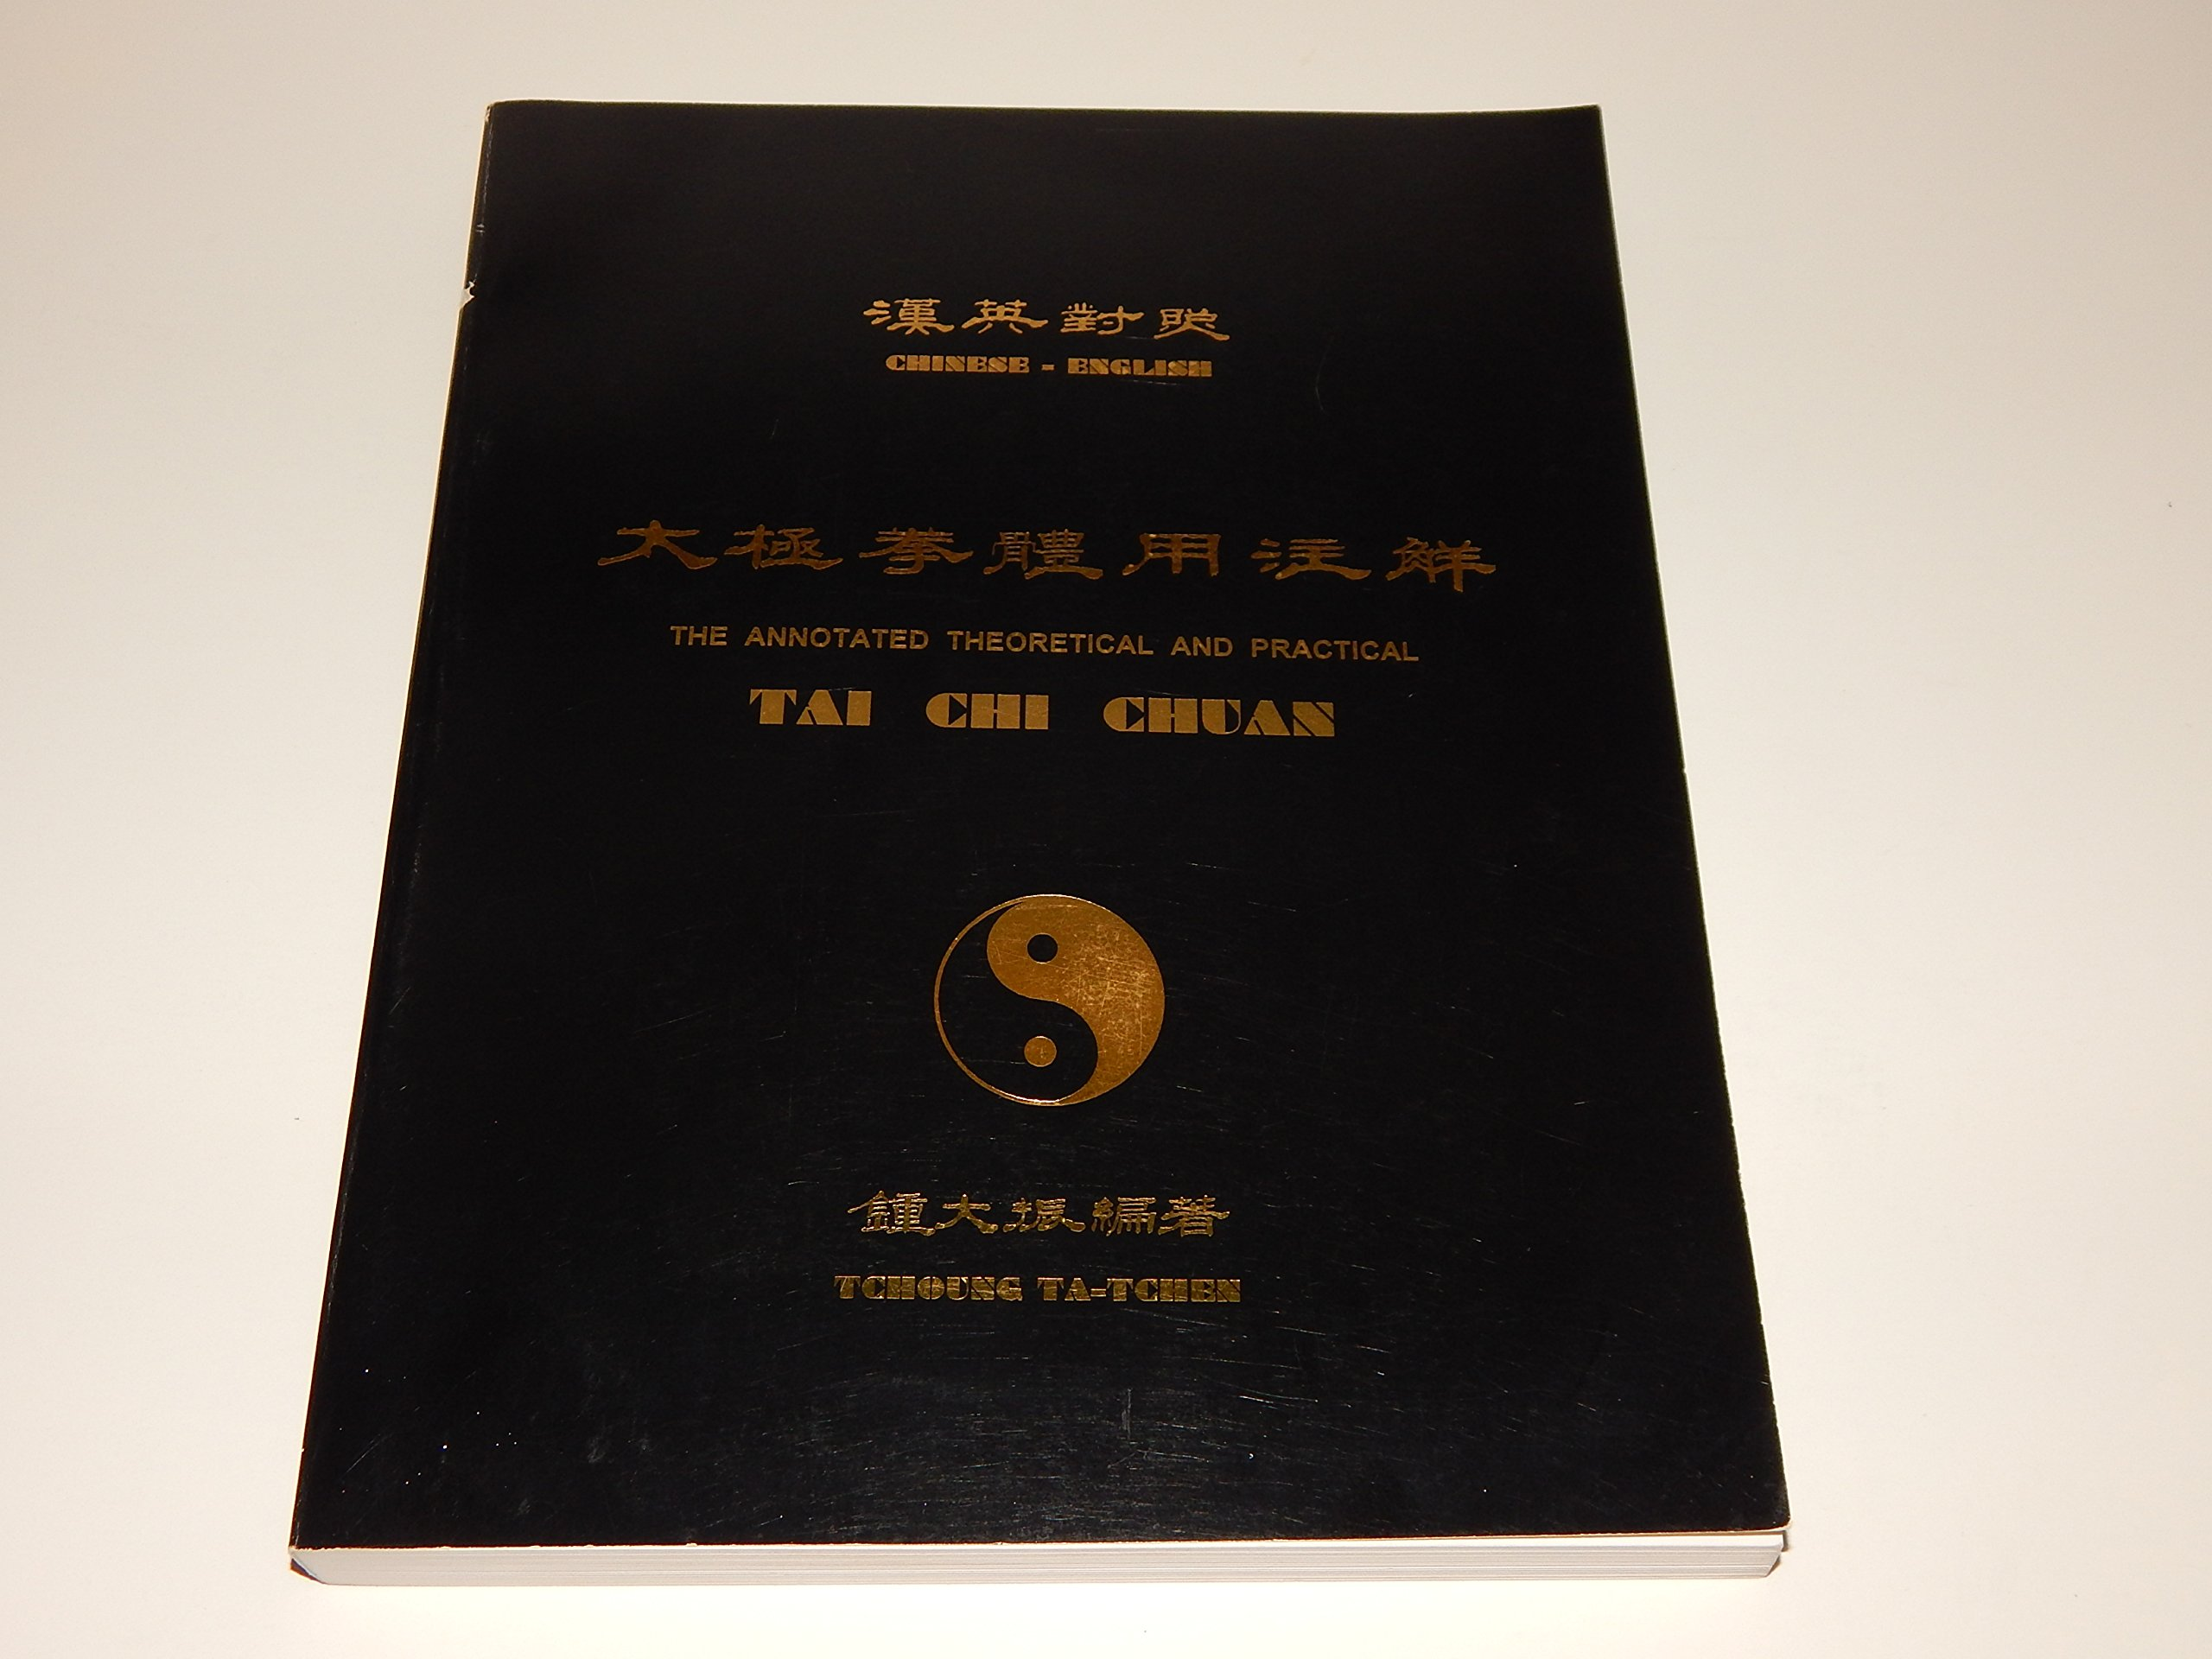 The annotated theoretical and practical tai chi chuan (Chinese-English)